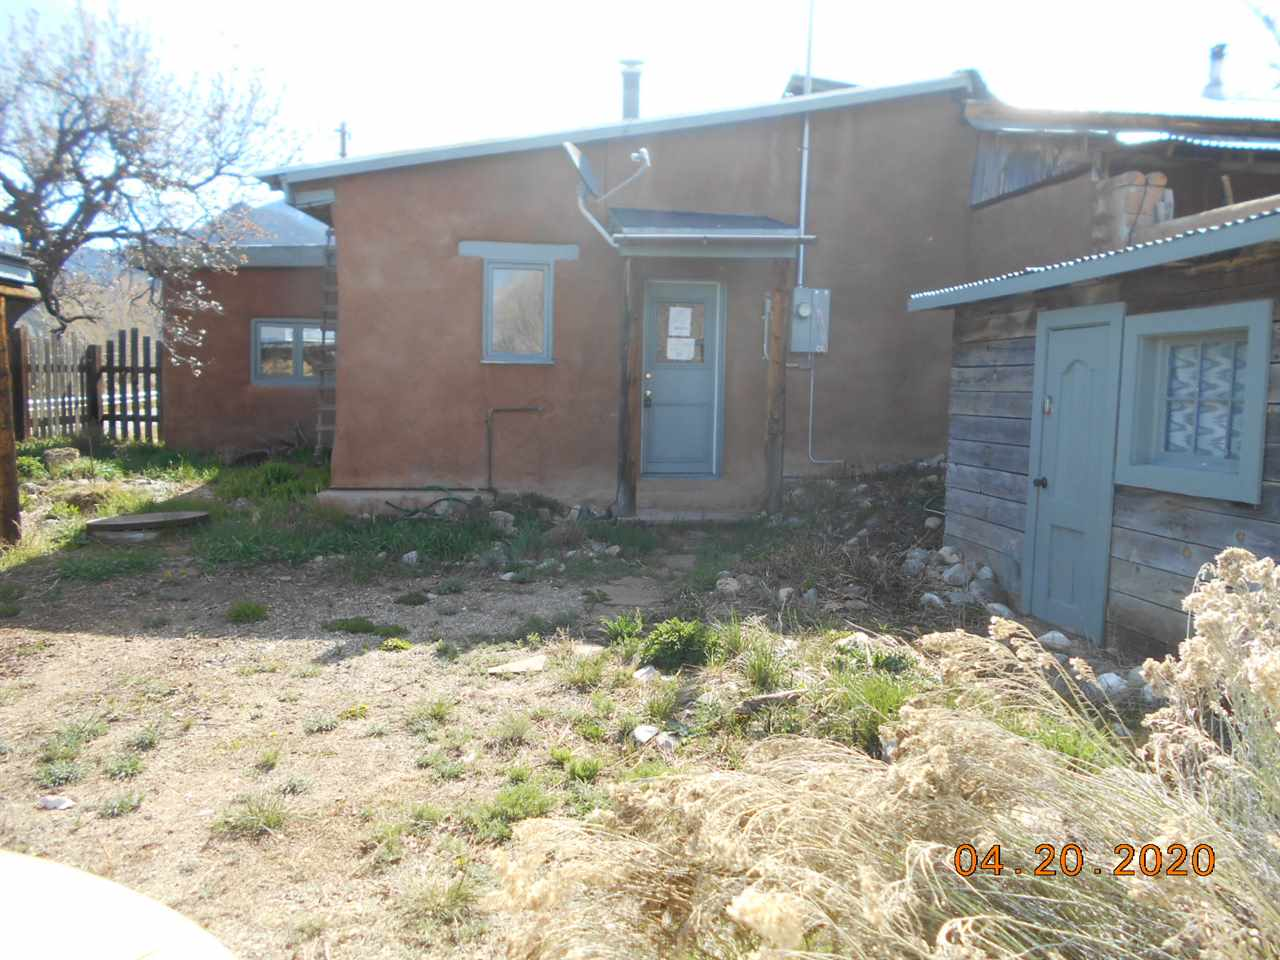 92 Rim Road, Arroyo Seco, NM 87514